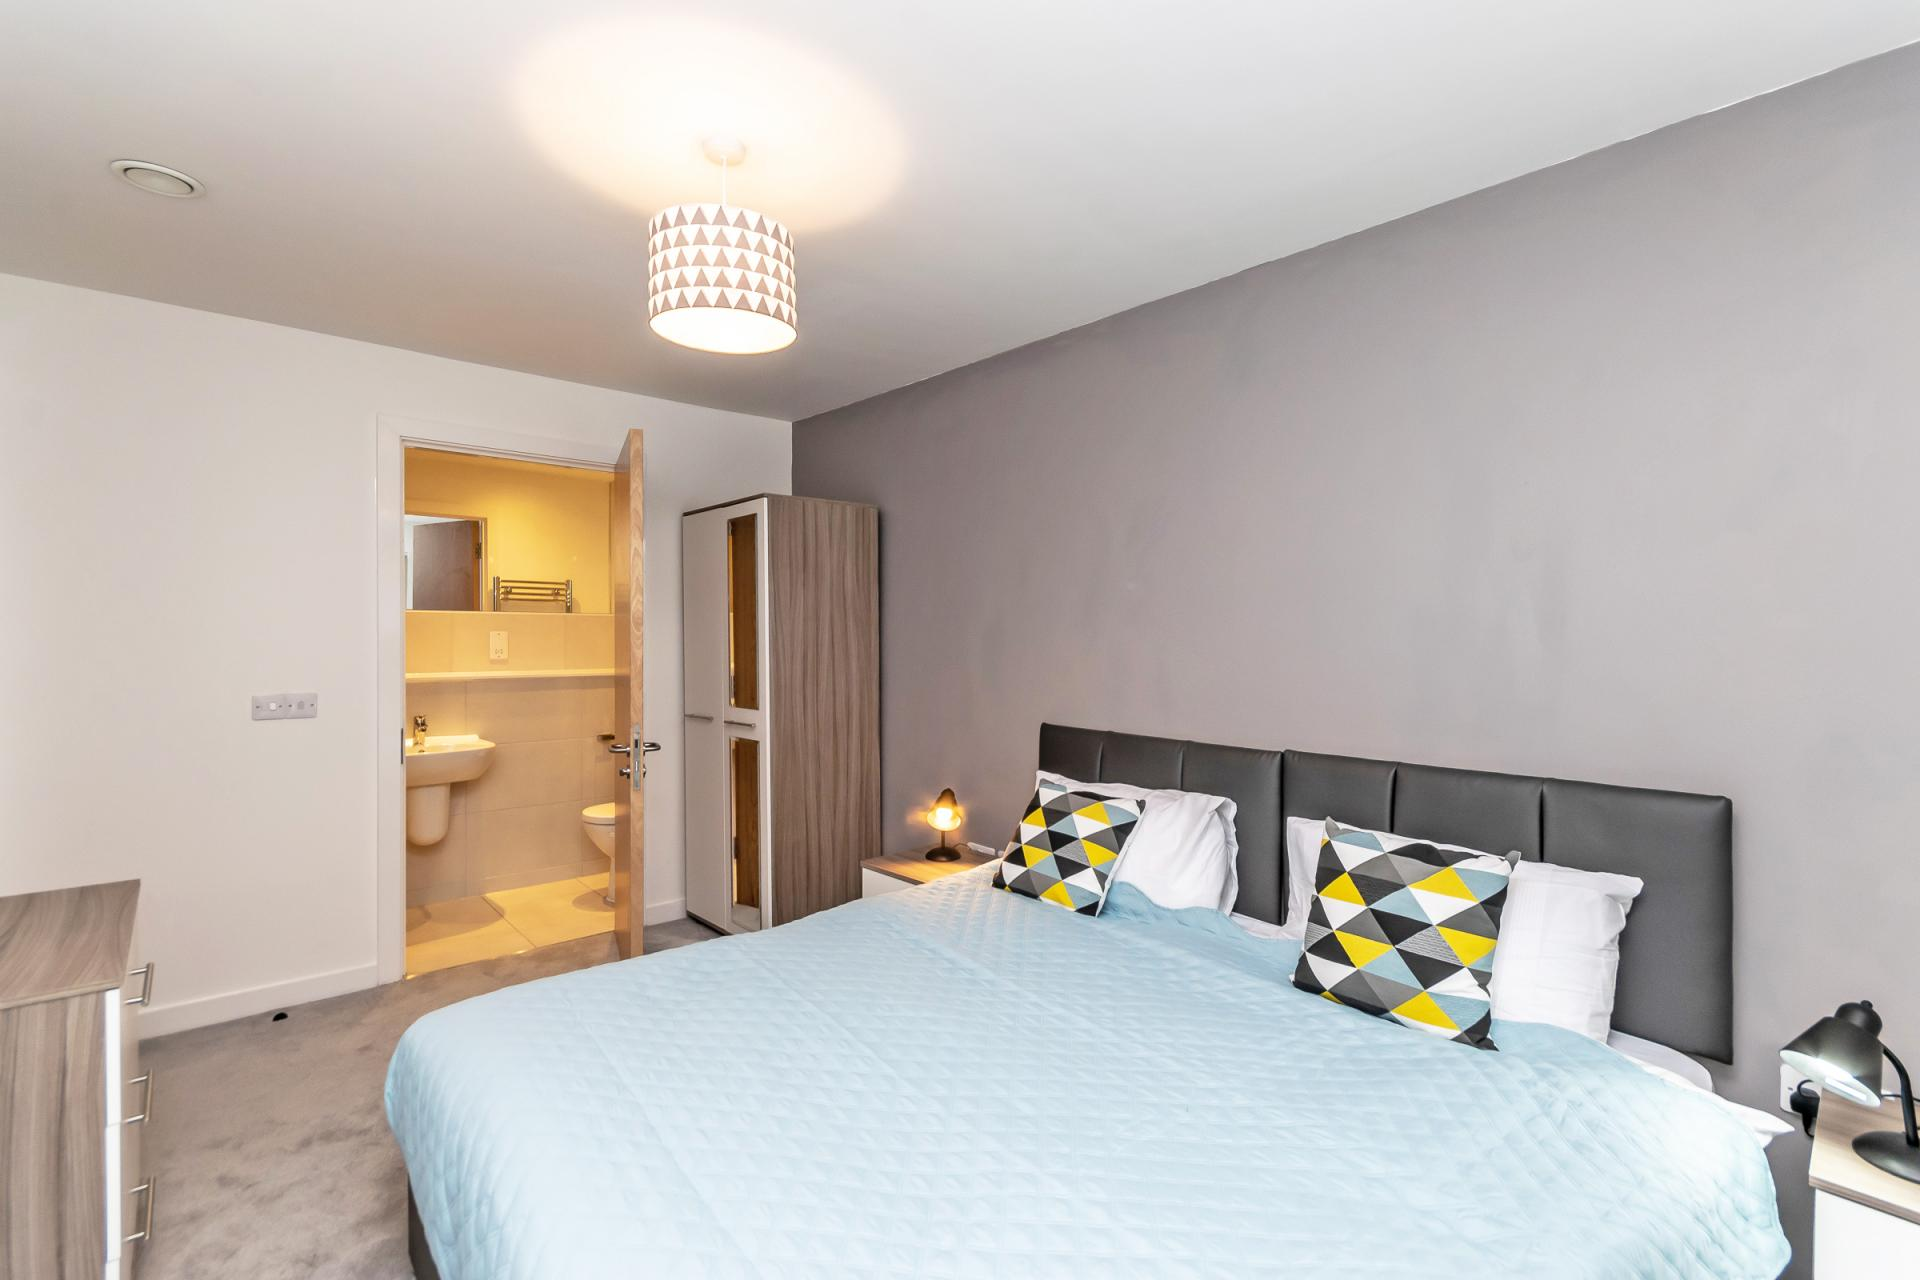 Bed at Halo House Serviced Apartments, Green Quarter, Manchester - Citybase Apartments